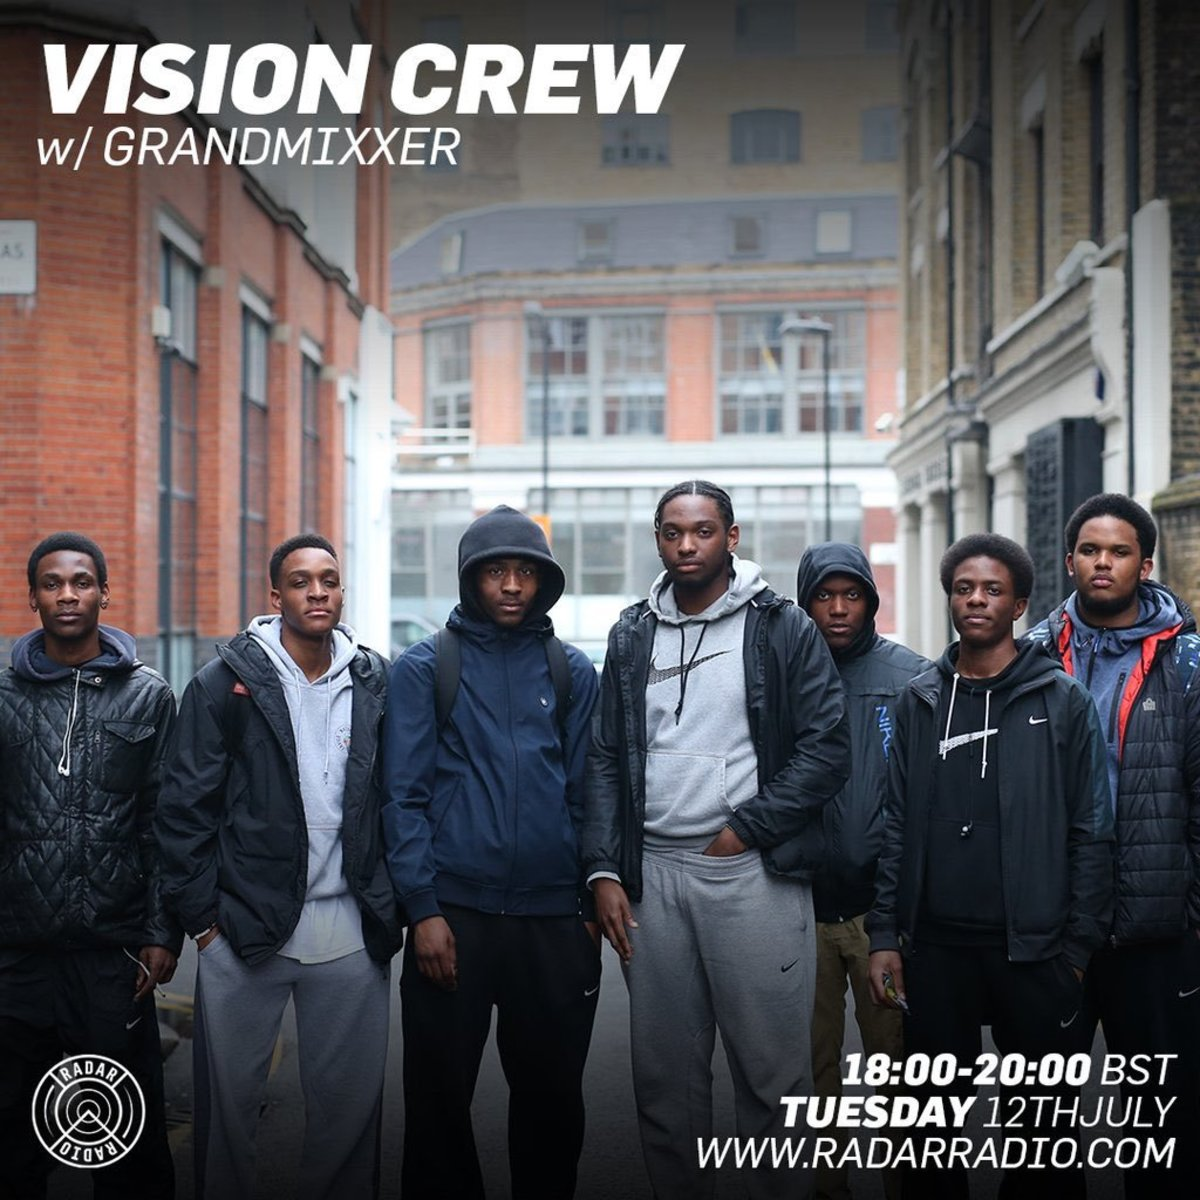 VISION CREW FOR RADAR RADIO.